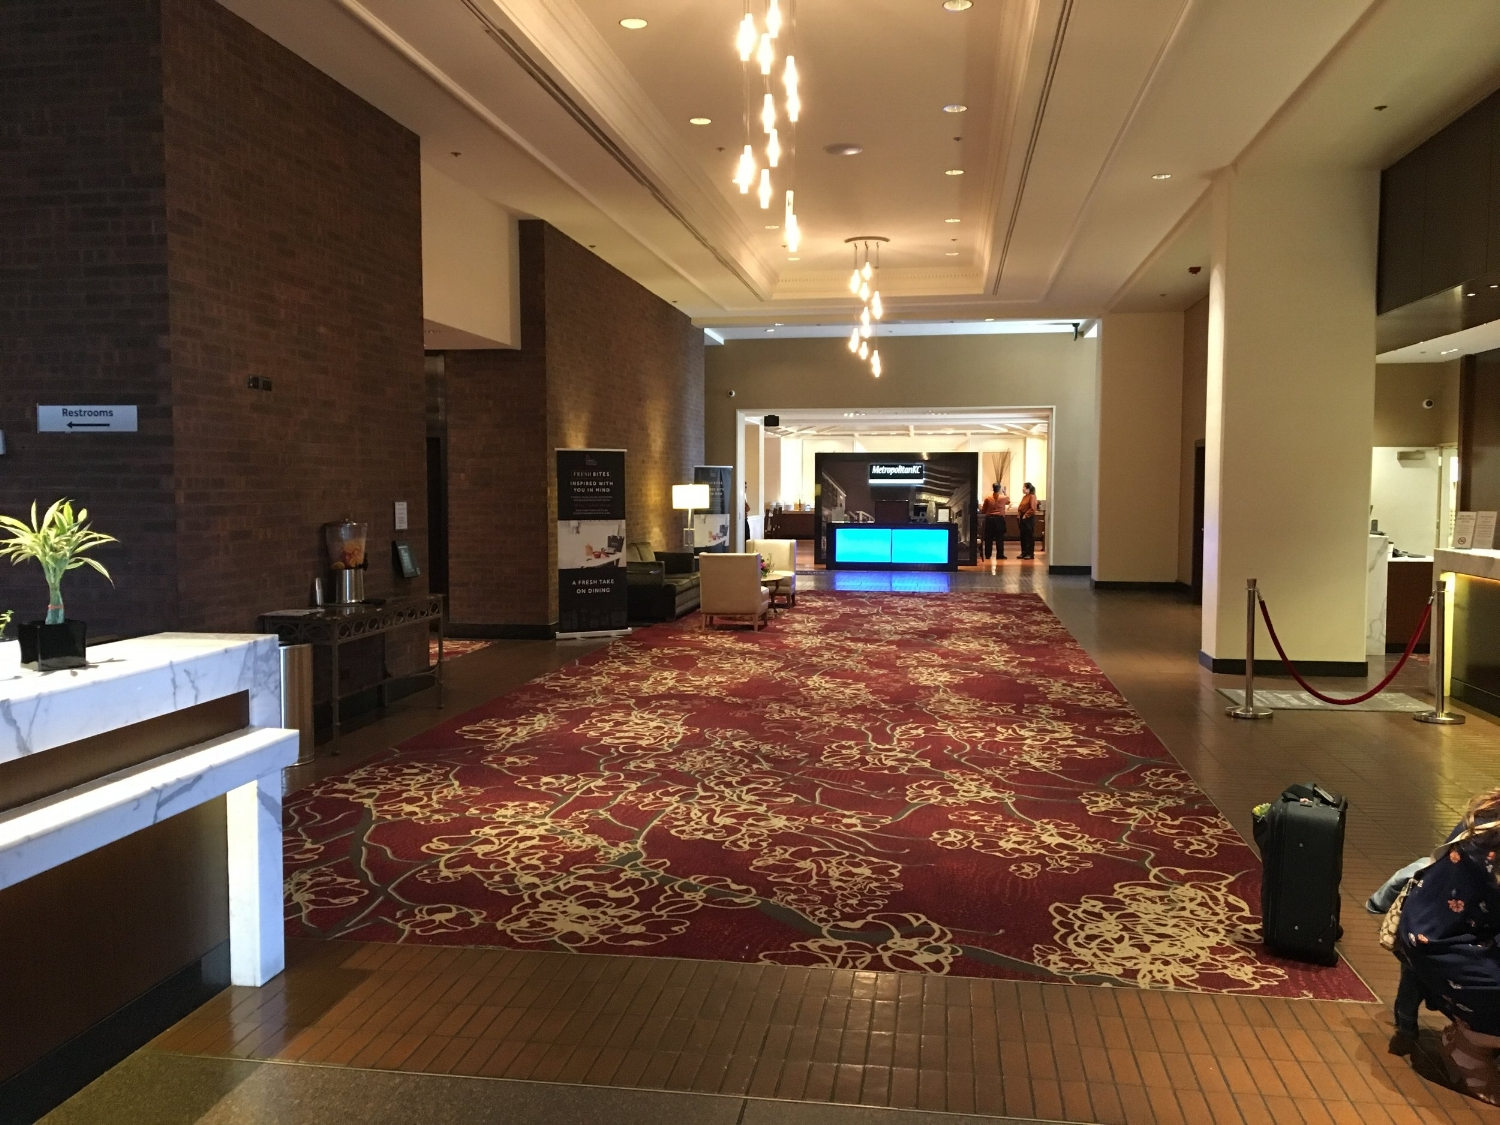 KANSAS CITY MARRIOTT DOWNTOWN LOBBY